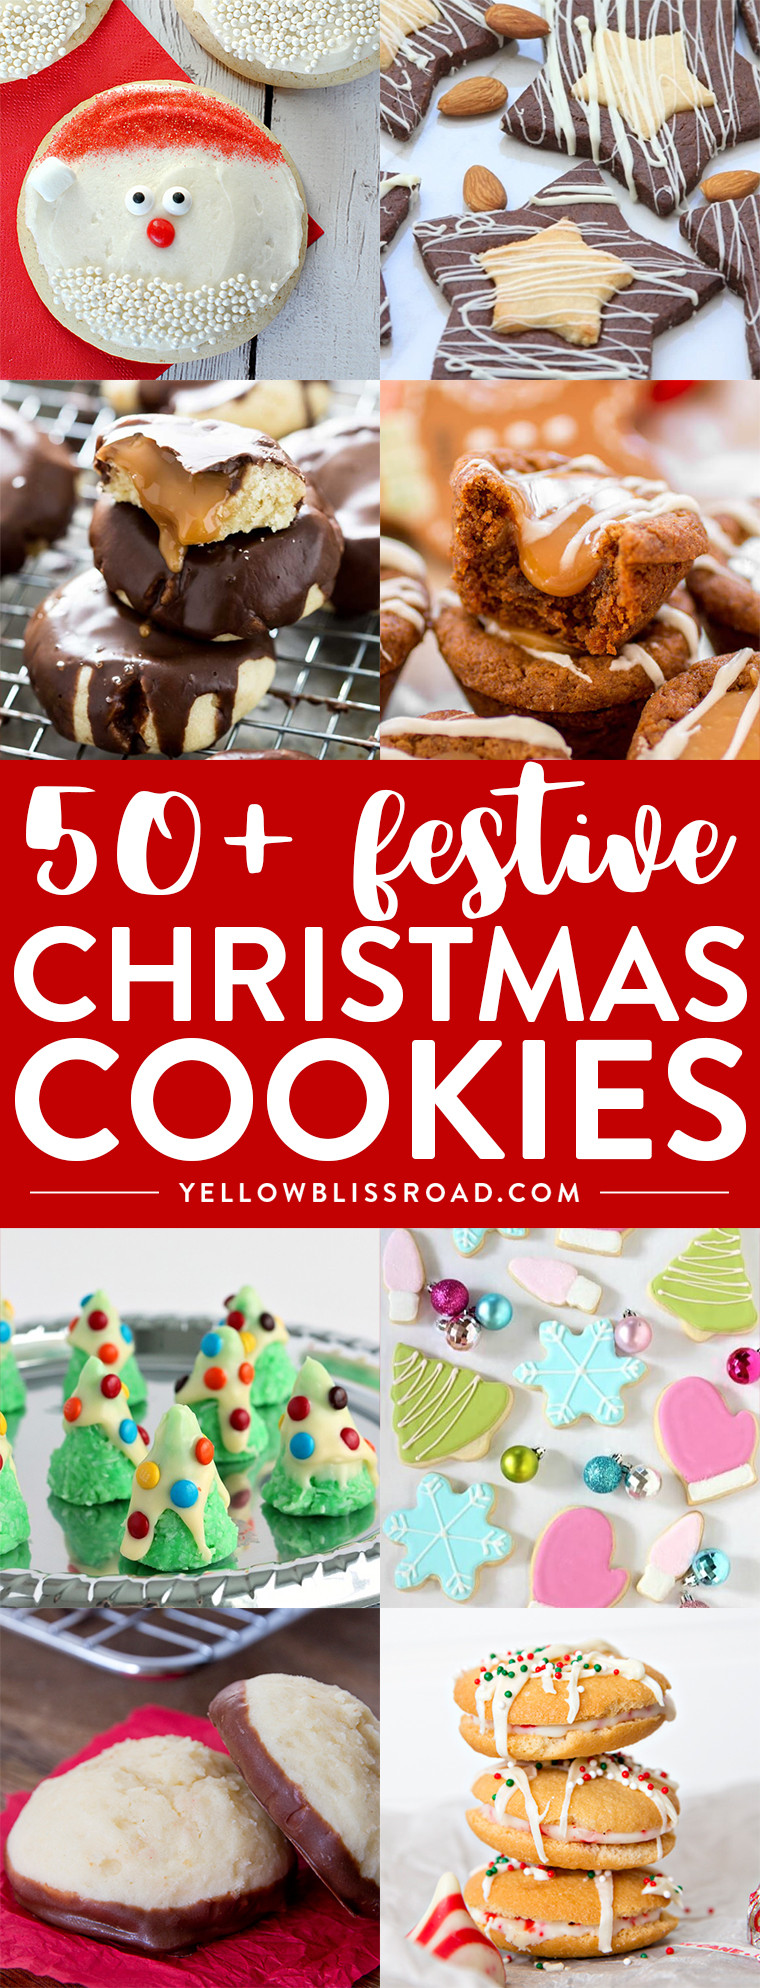 Festive Christmas Cookies  50 Festive Christmas Cookie Recipes